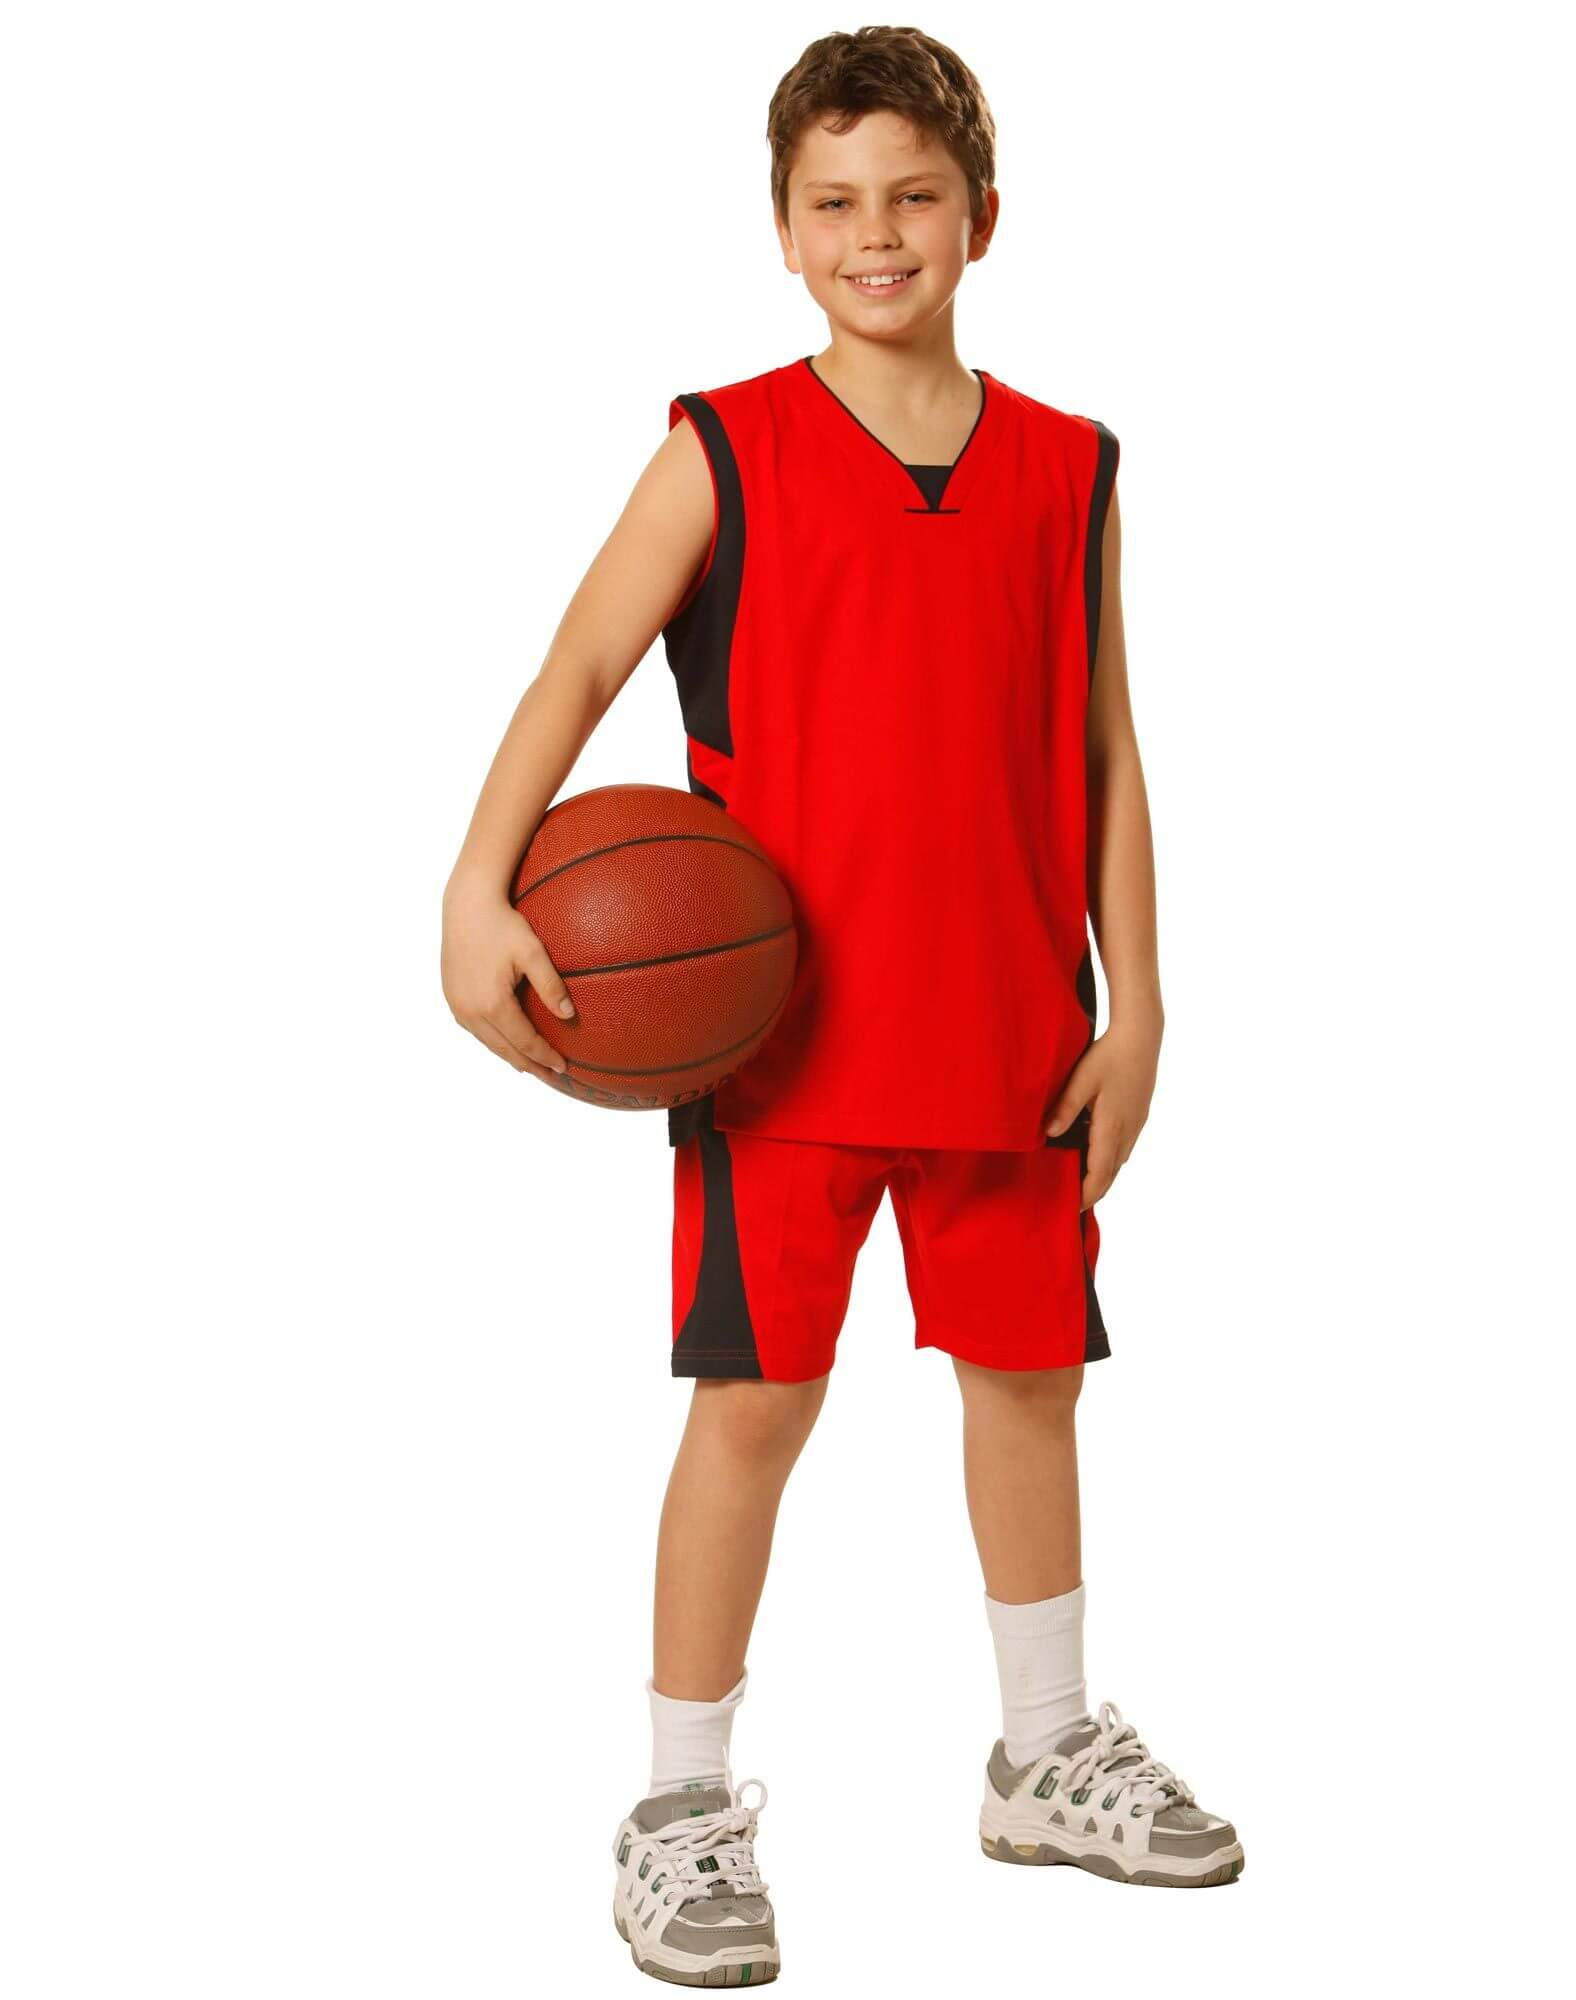 Kids Basketball Jerseys Manufacturers in Thiruvananthapuram